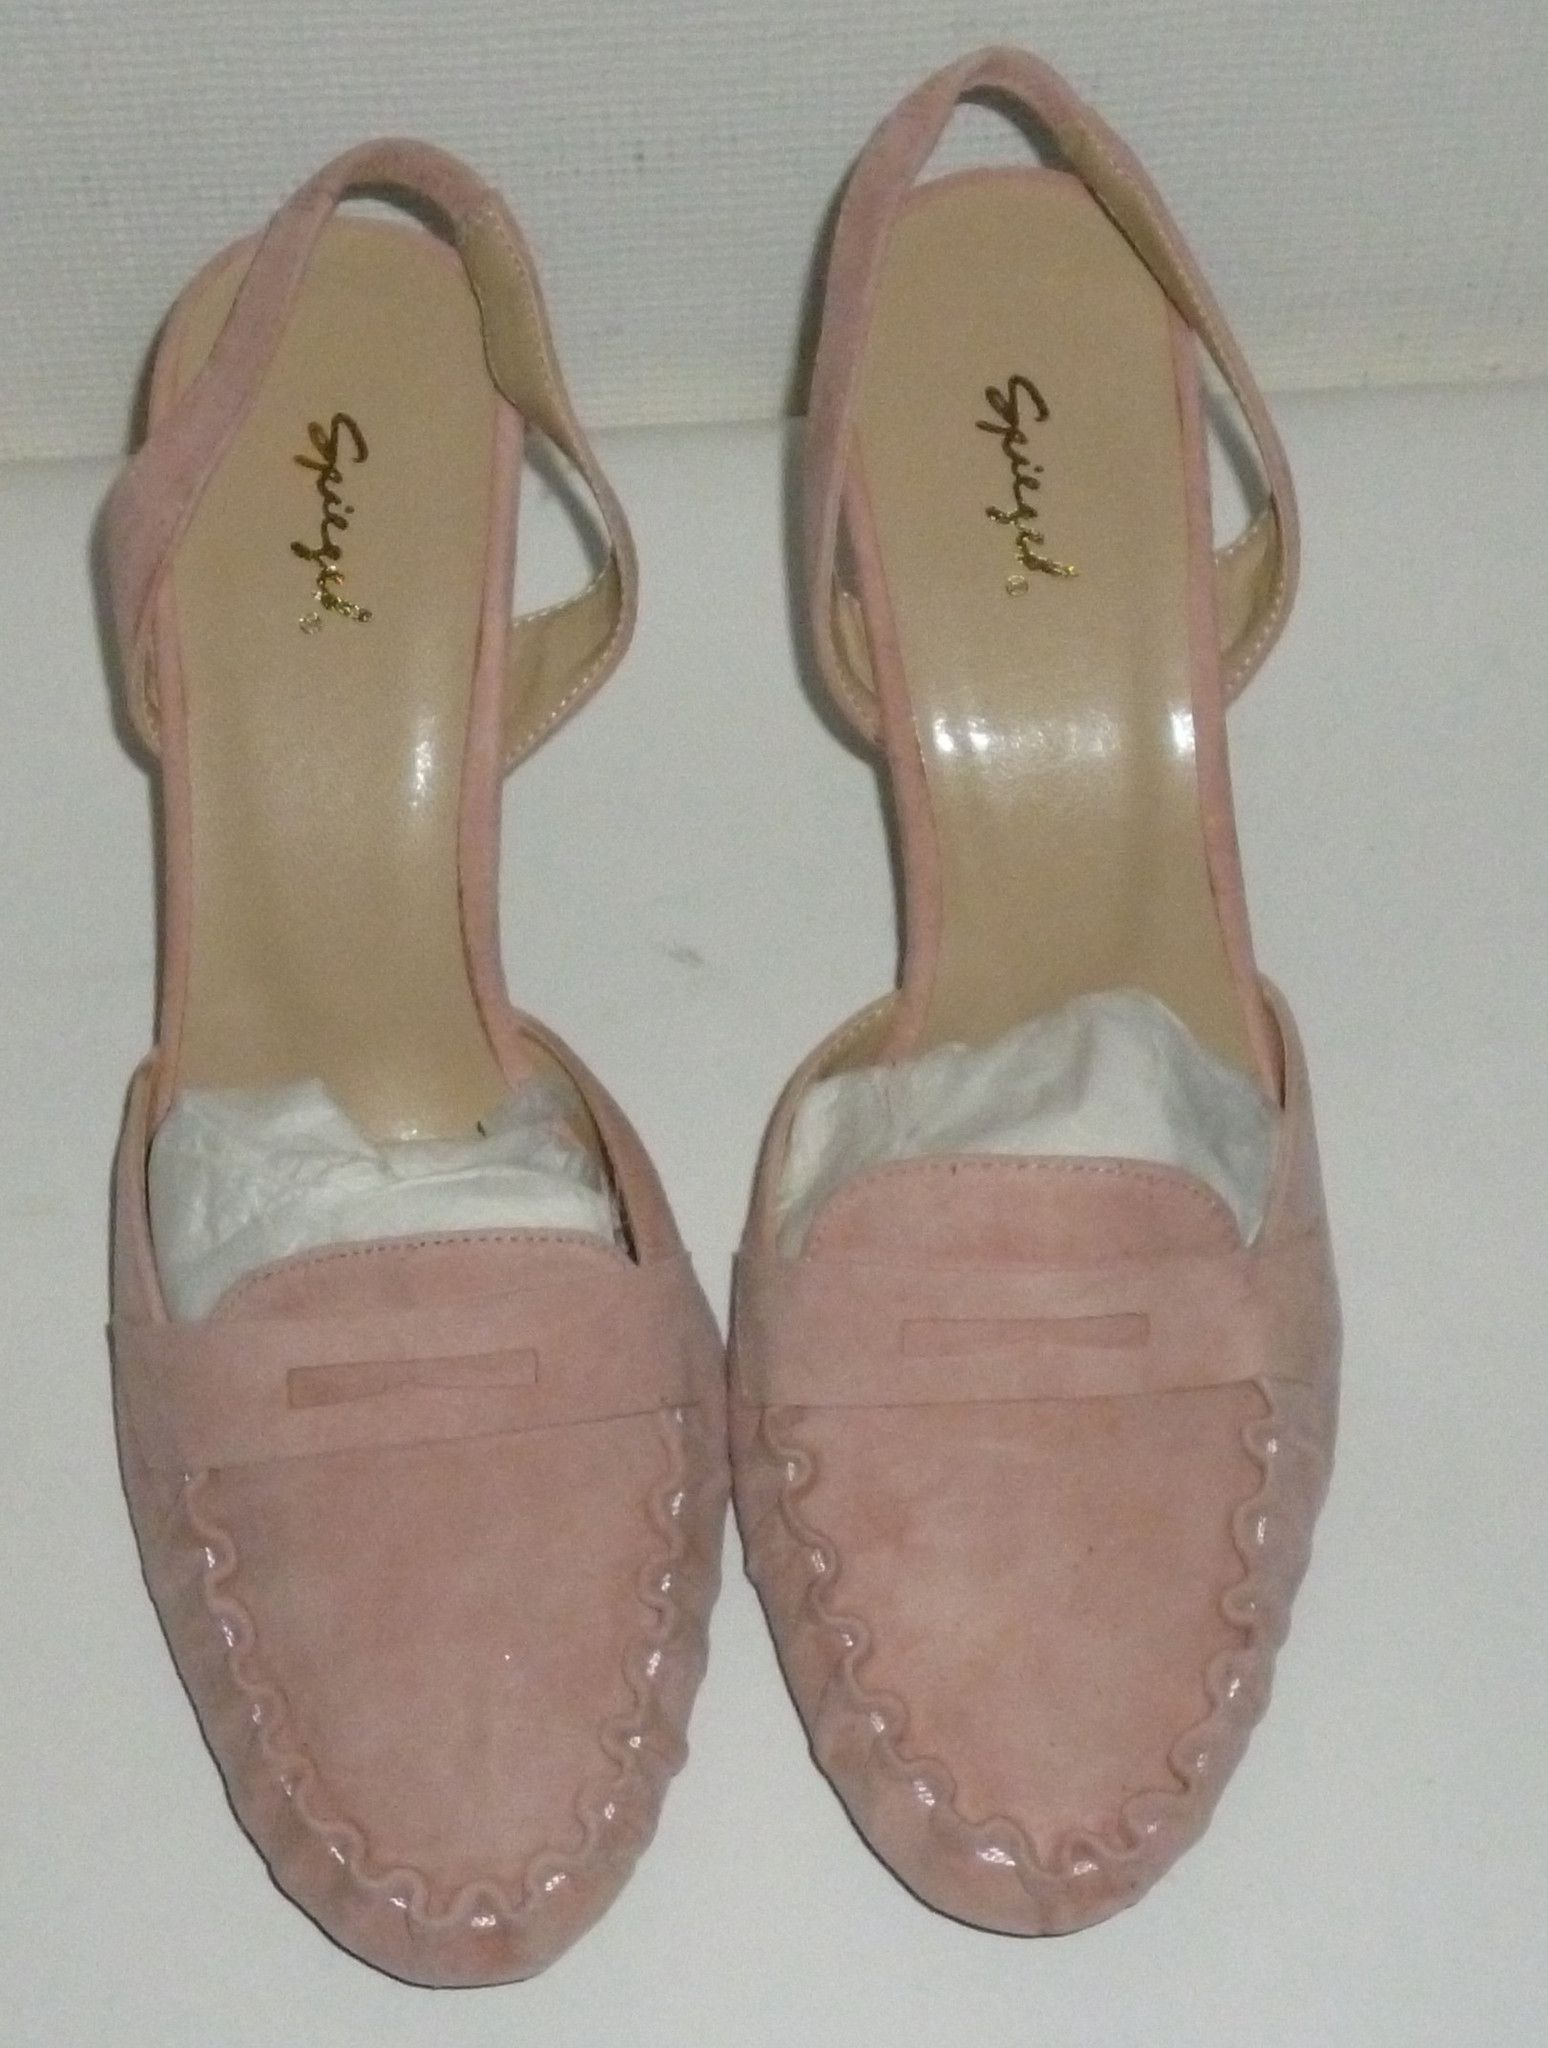 Women's Spiegel Pink Moccasin Sling Leather High Heels Shoes SIze 10B